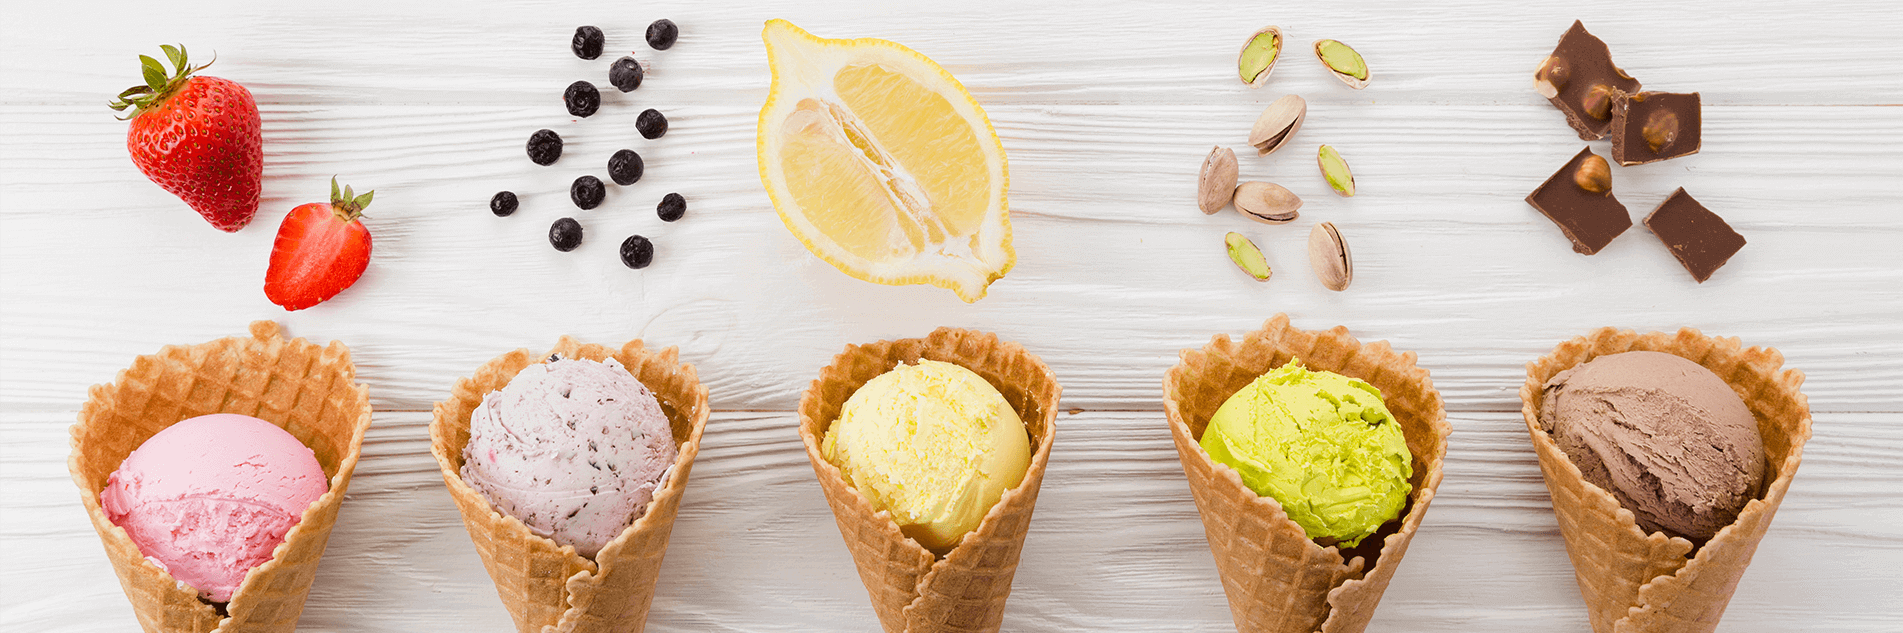 best ice cream ingredients suppliers company